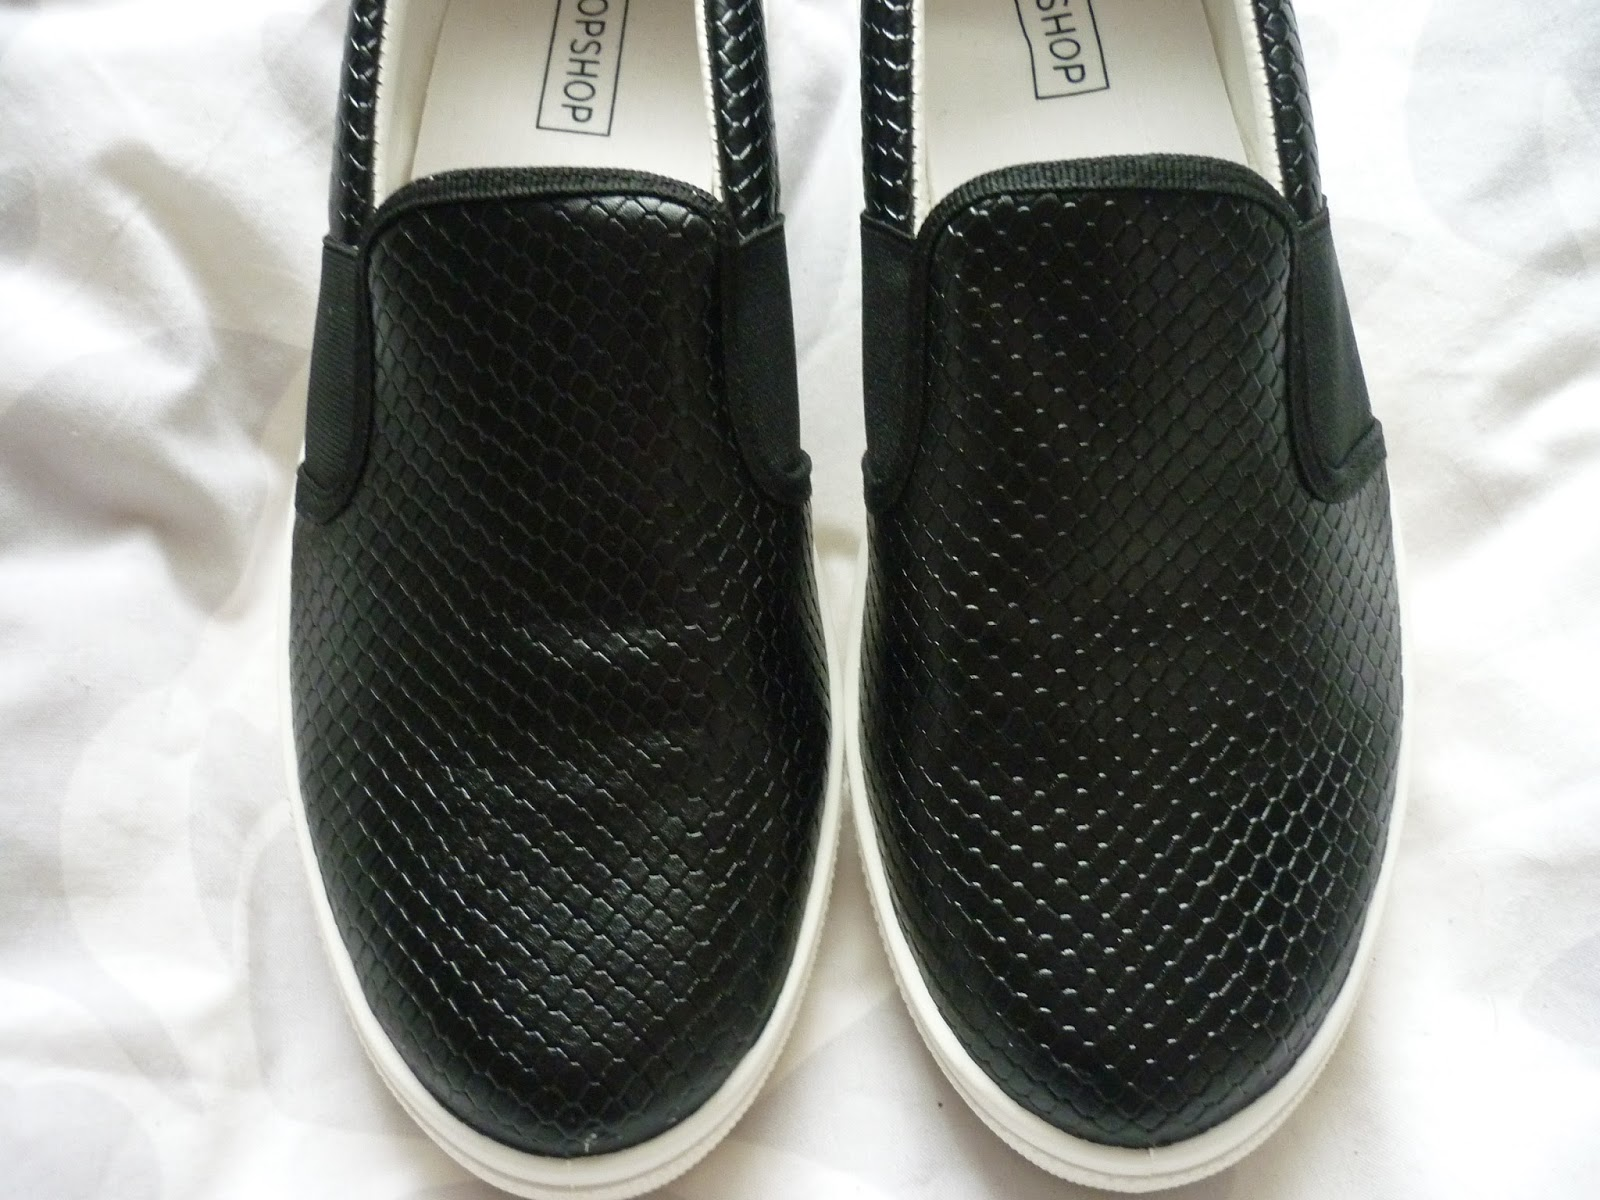 Topshop Lizard Skater Shoes